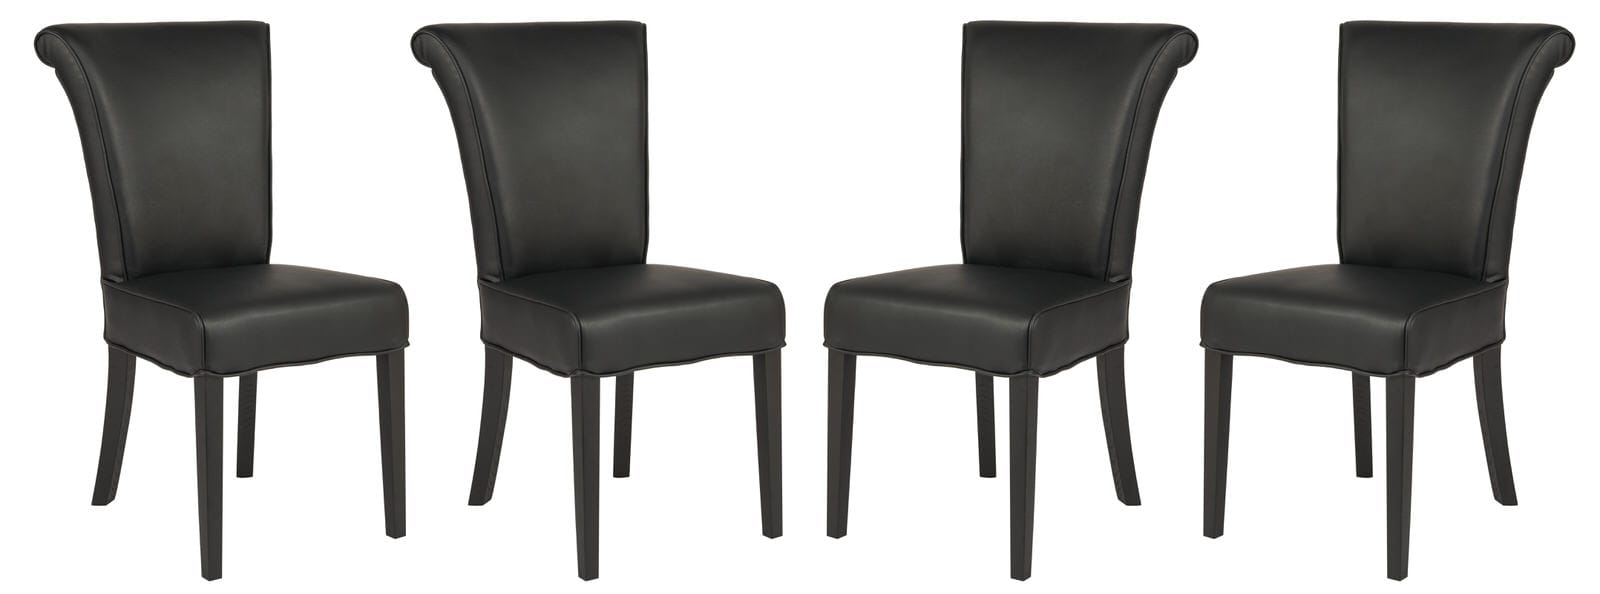 Super Eden Contemporary Faux Leather Black Dining Chair Set Of 4 By Leisuremod Alphanode Cool Chair Designs And Ideas Alphanodeonline